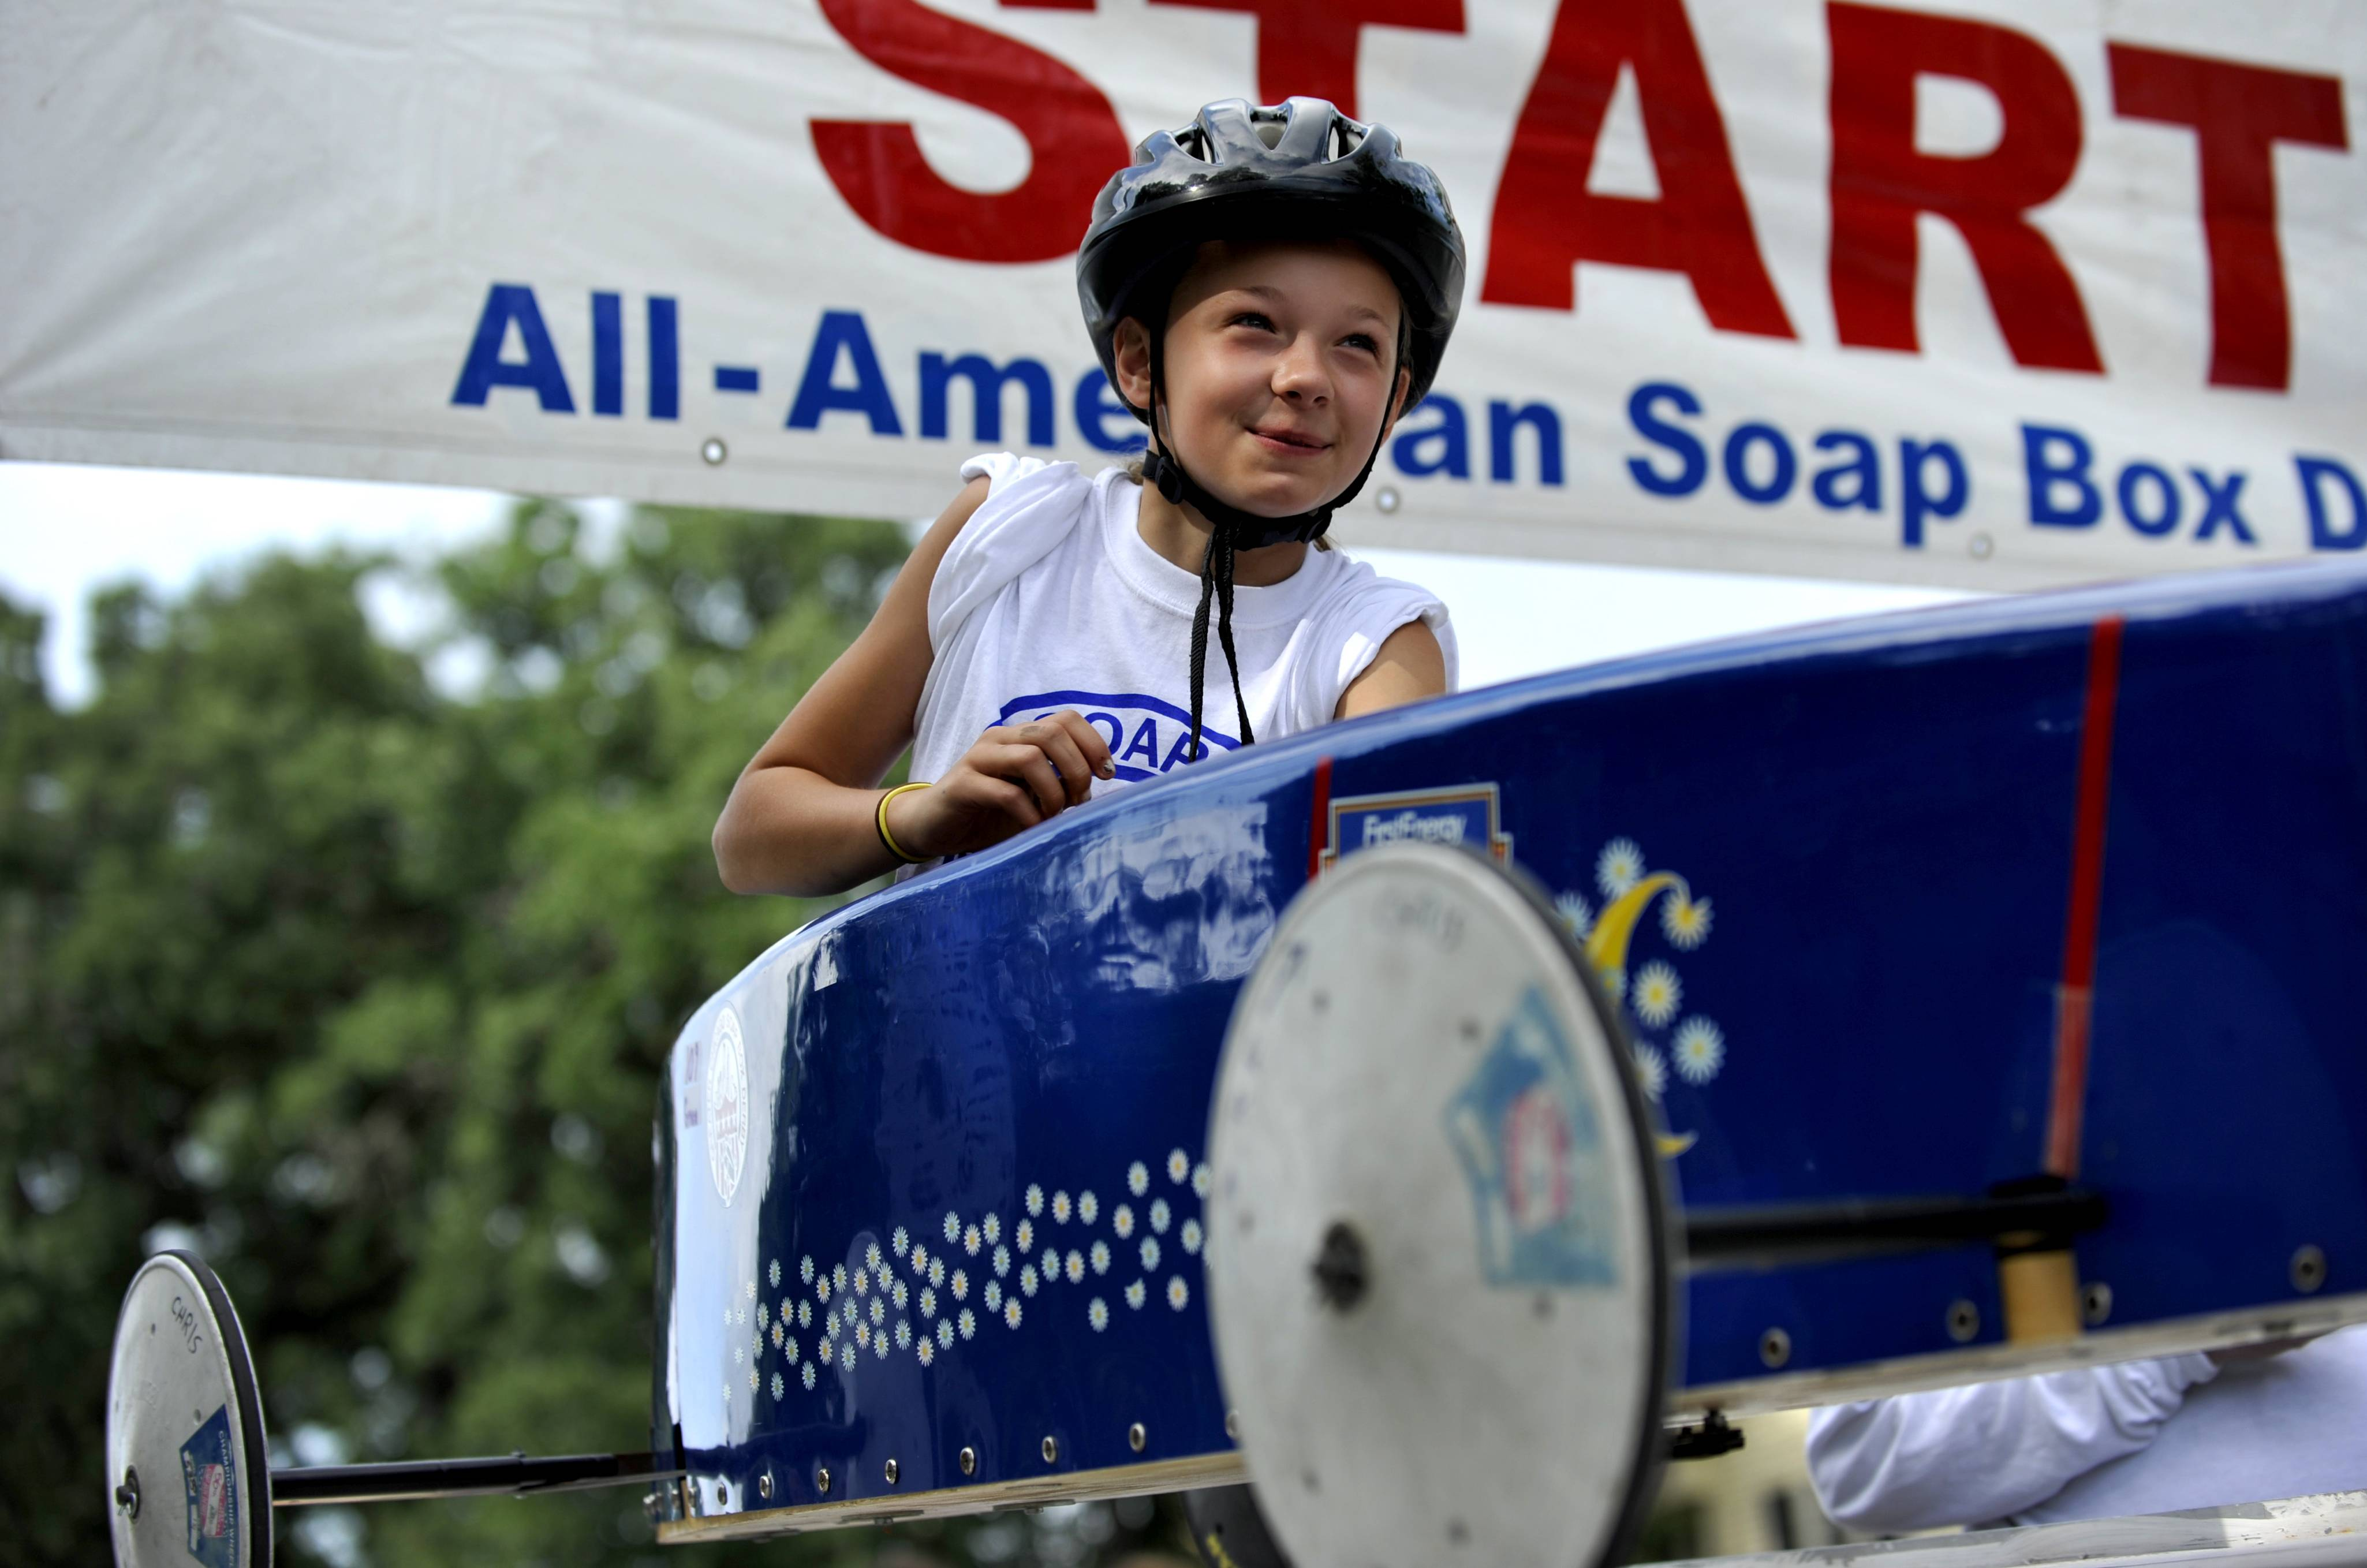 Grace Meshenky, 9, of South Elgin, gets ready for her very first race at the Geneva All American Soap Box Derby Race in downtown Geneva on Saturday. The winner from this round moves on to the world championships in Akron, Ohio.